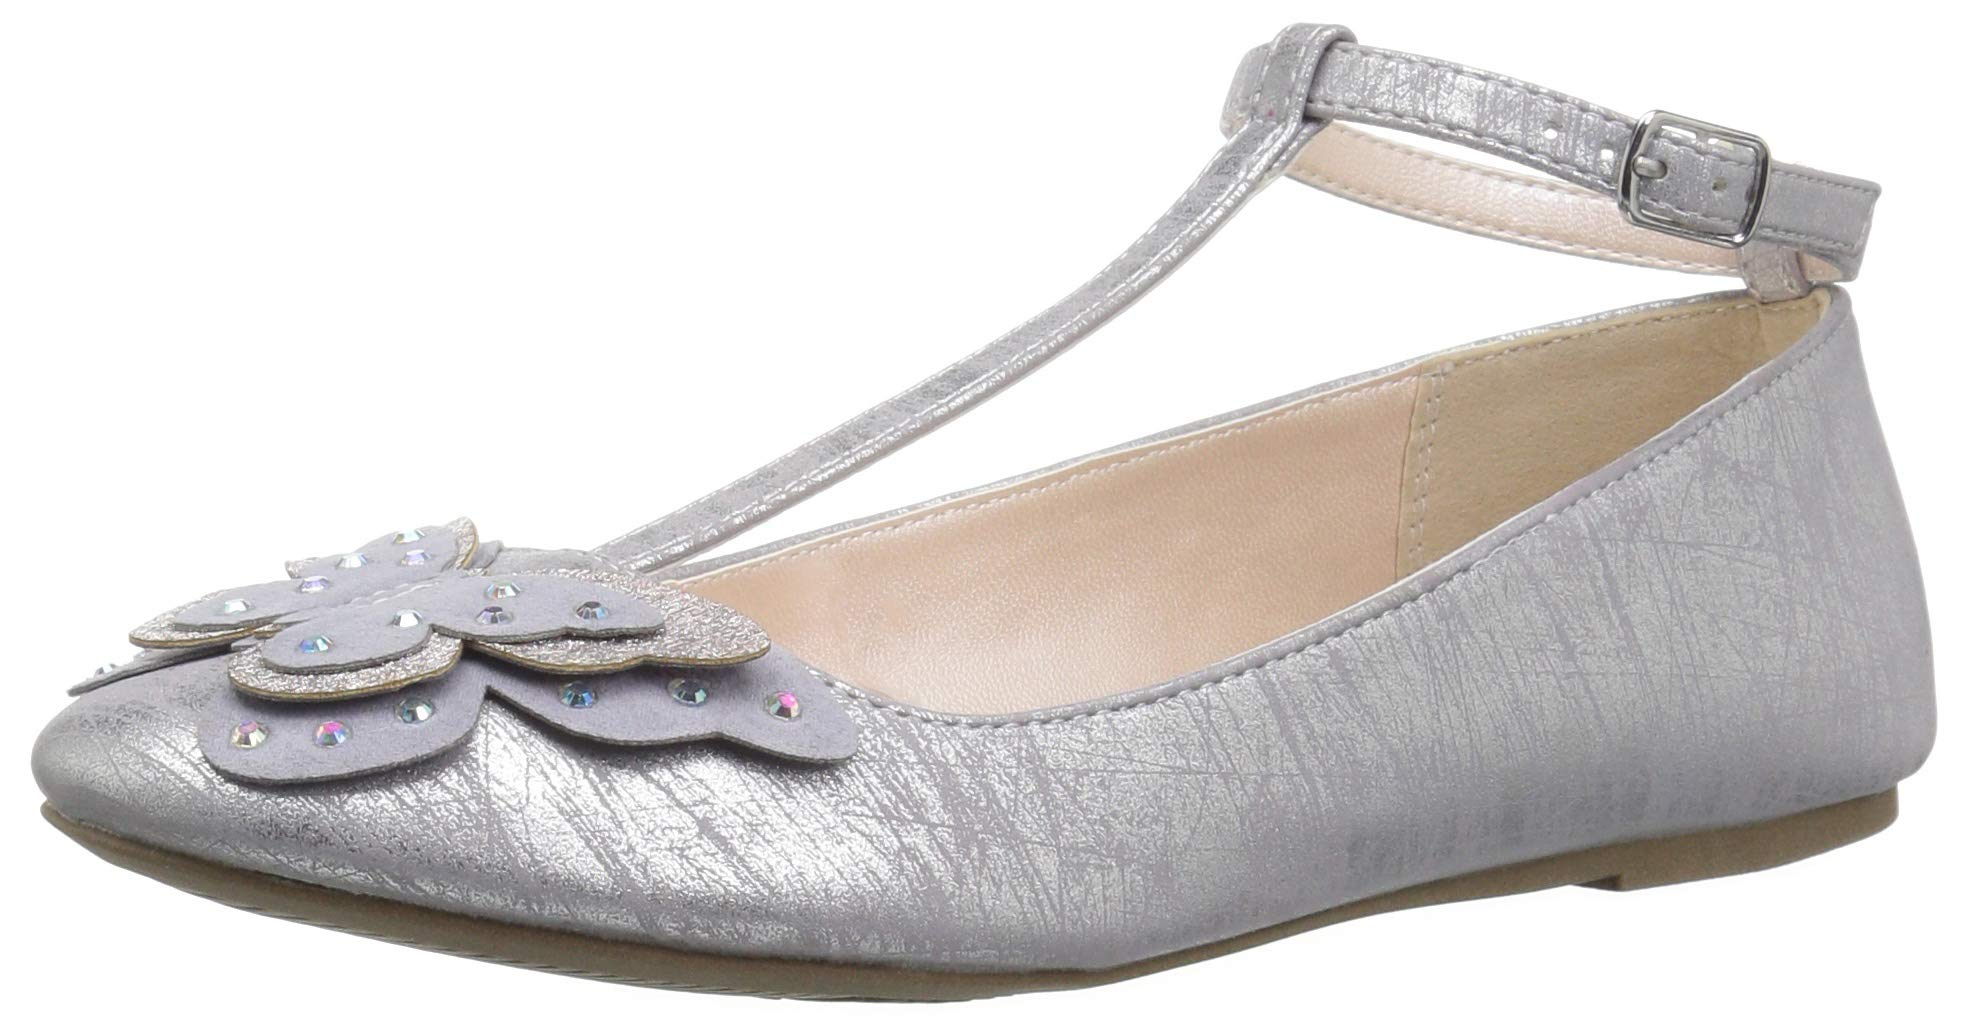 The Children's Place Girls' T-Strap Ballet Flats, Light Lavender, Youth 3 Child US Little Kid by The Children's Place (Image #1)